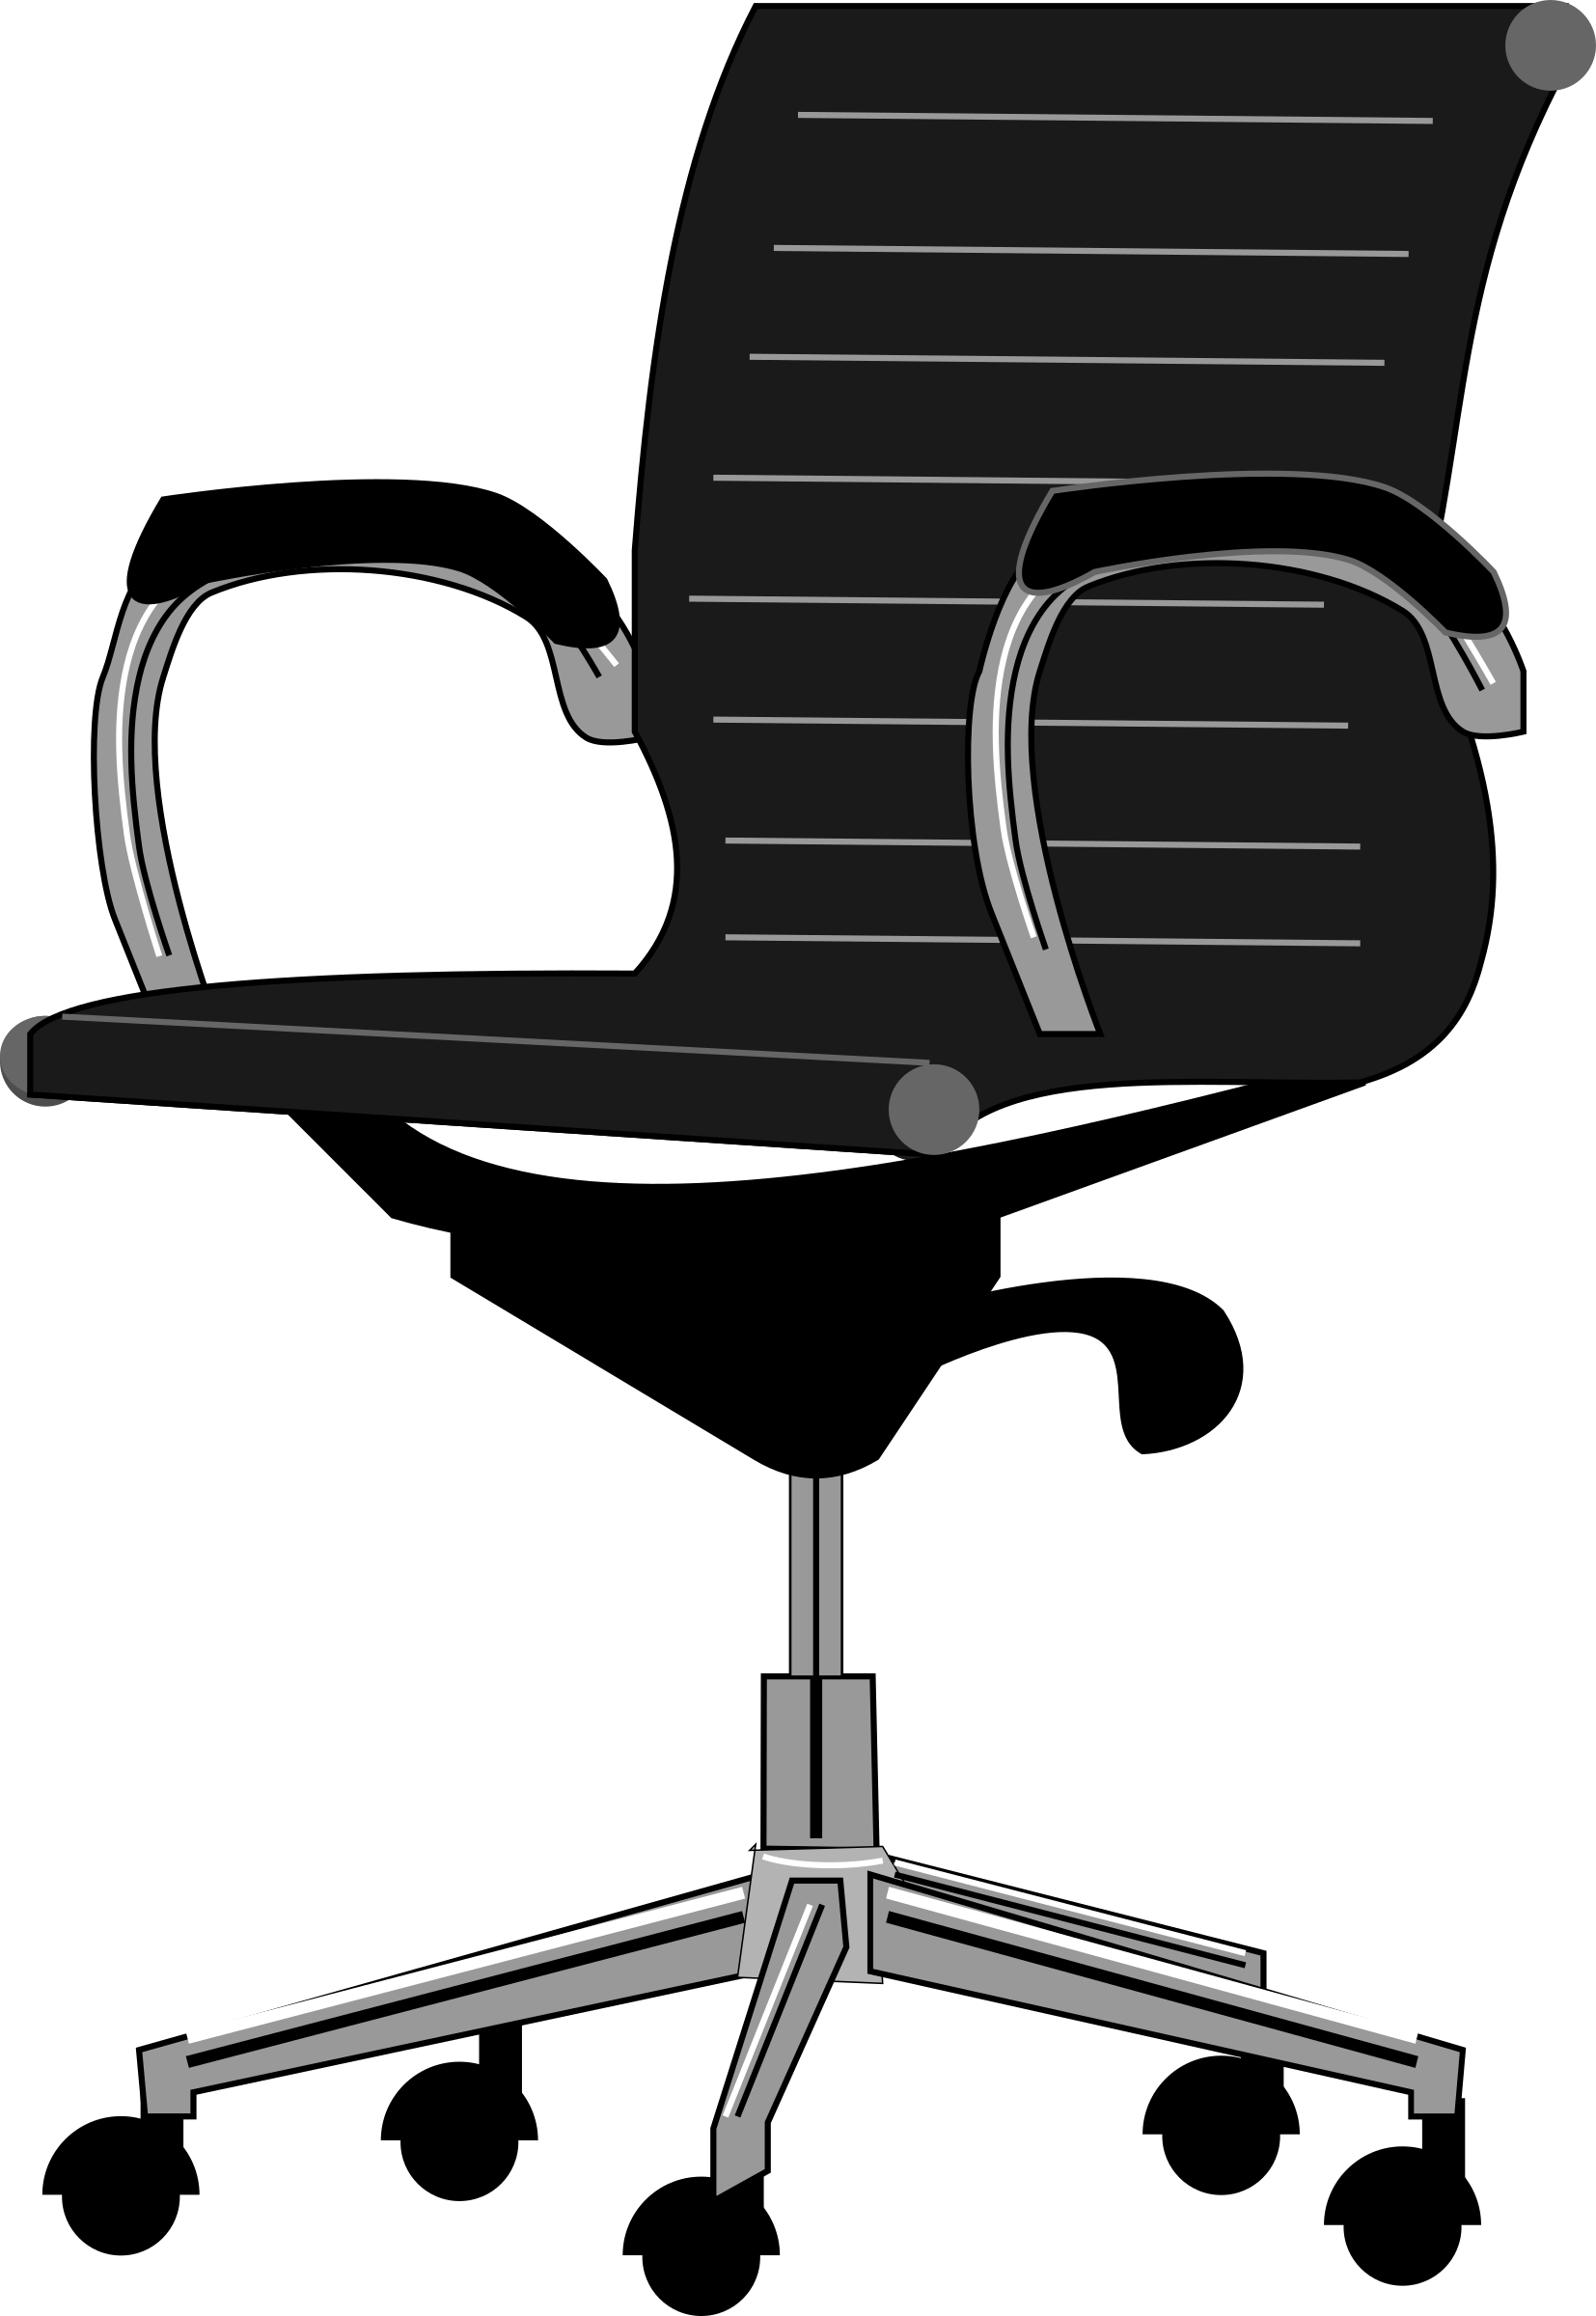 1654x2400 Collection Of Free Chair Vector Desk. Download On Ubisafe